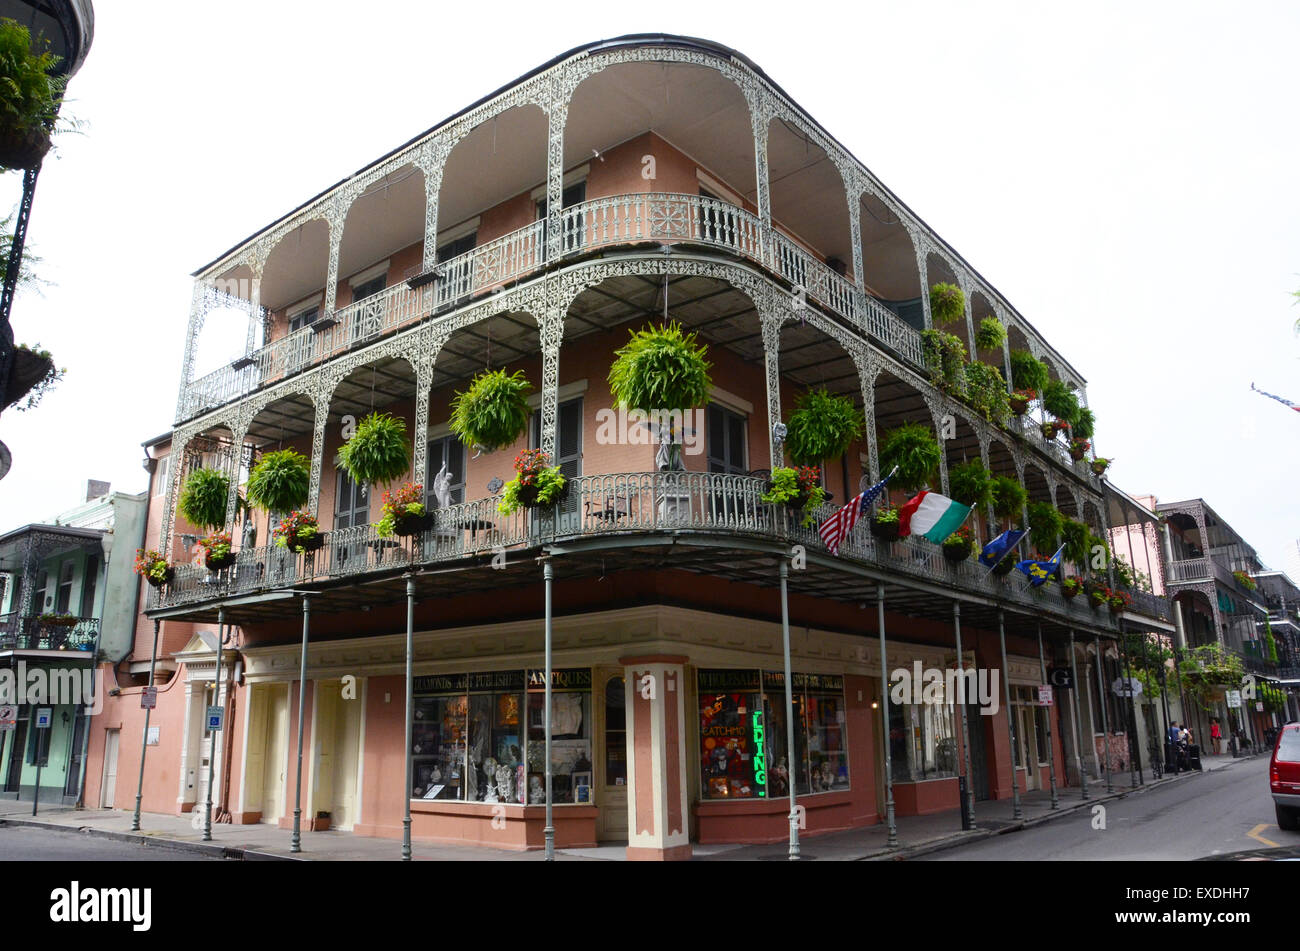 french quarter balcony french style buildings new orleans stock photo royalty free image. Black Bedroom Furniture Sets. Home Design Ideas